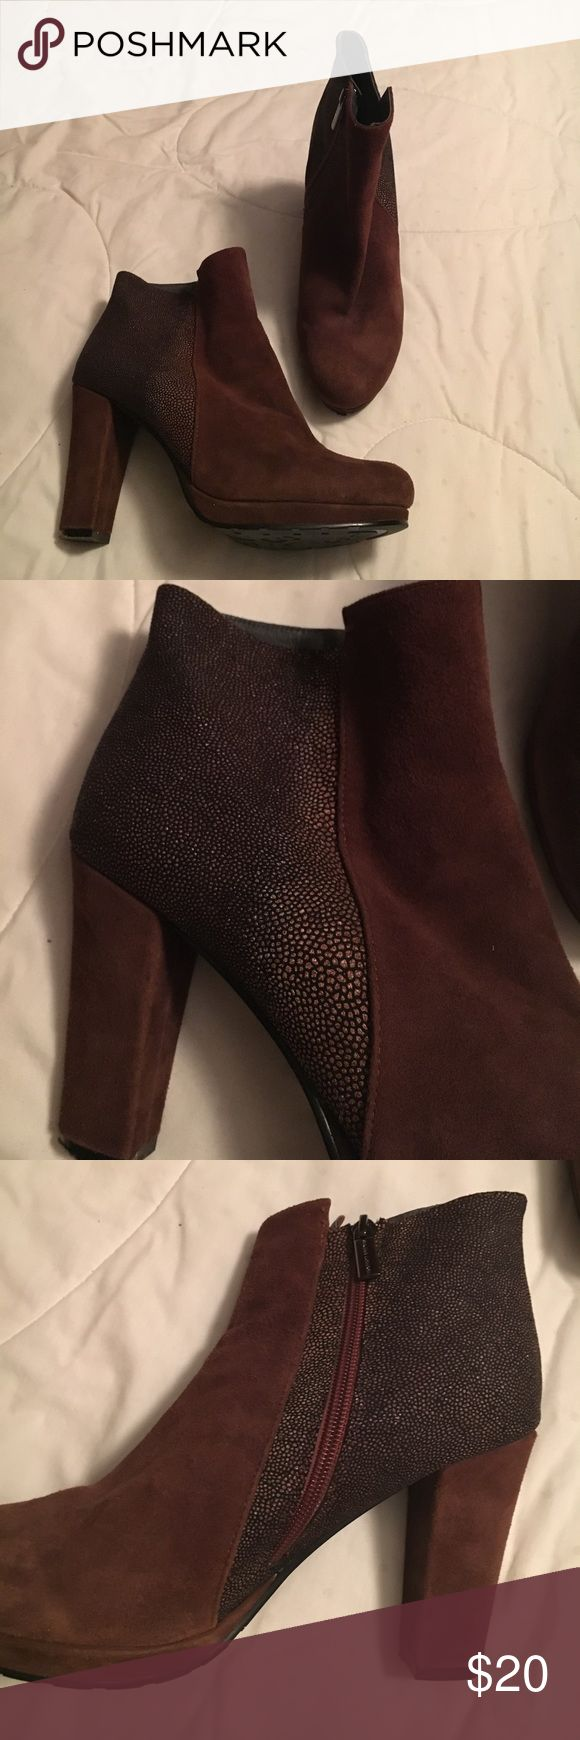 Sacha London Flavia Boot With Leather Upper Sacha London Flavia Boot With Leather Upper Sacha London Shoes Ankle Boots & Booties